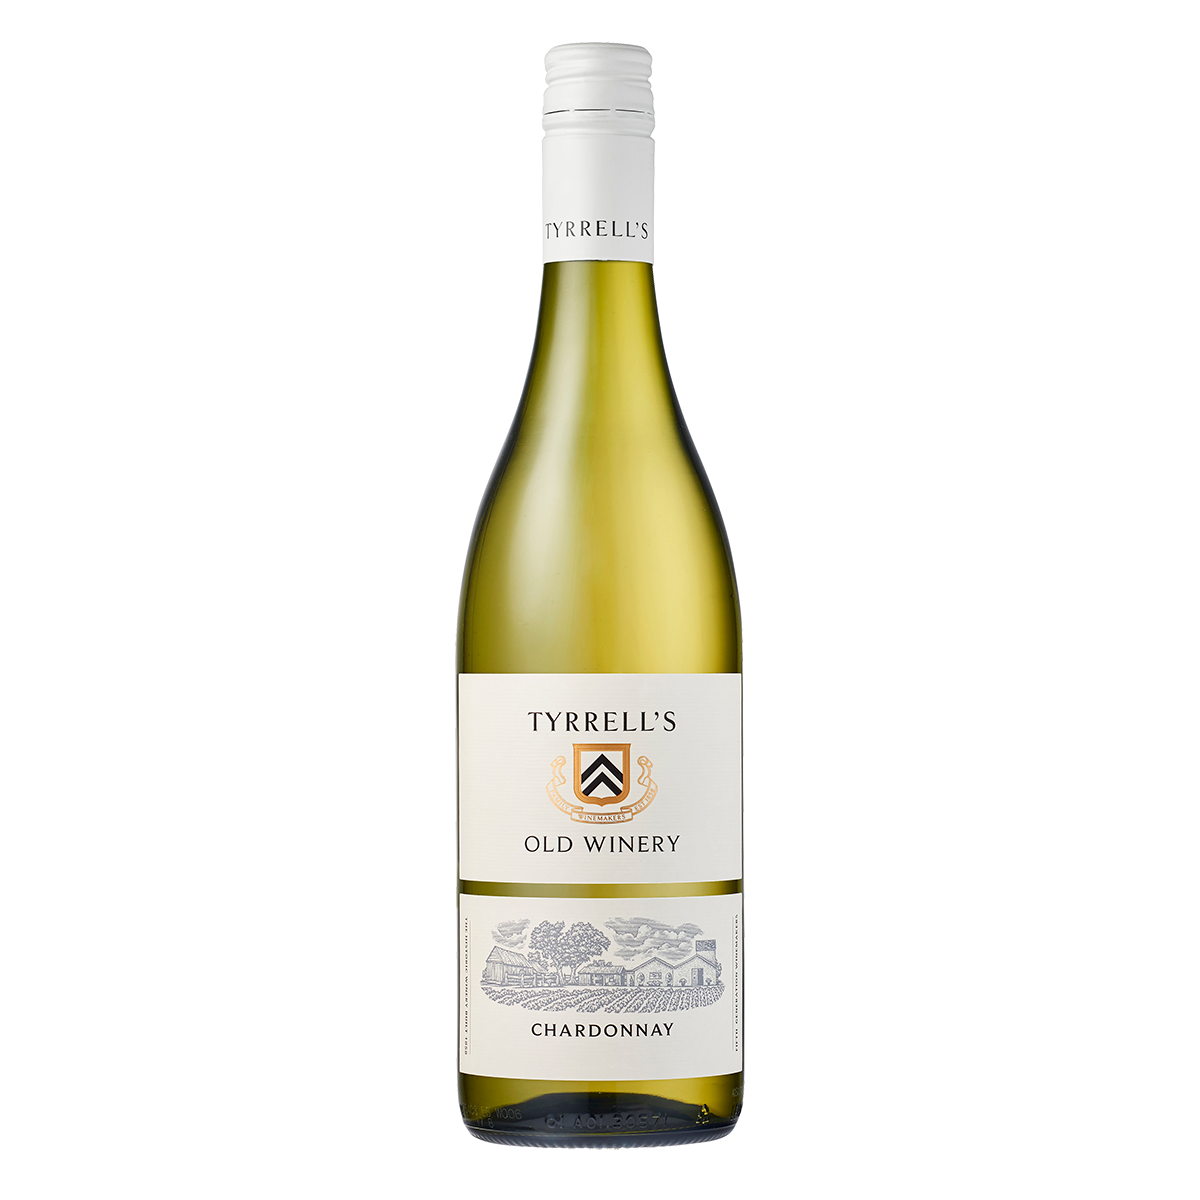 Tyrrells Old Winery Chardonnay 2019 (12 Bottles)